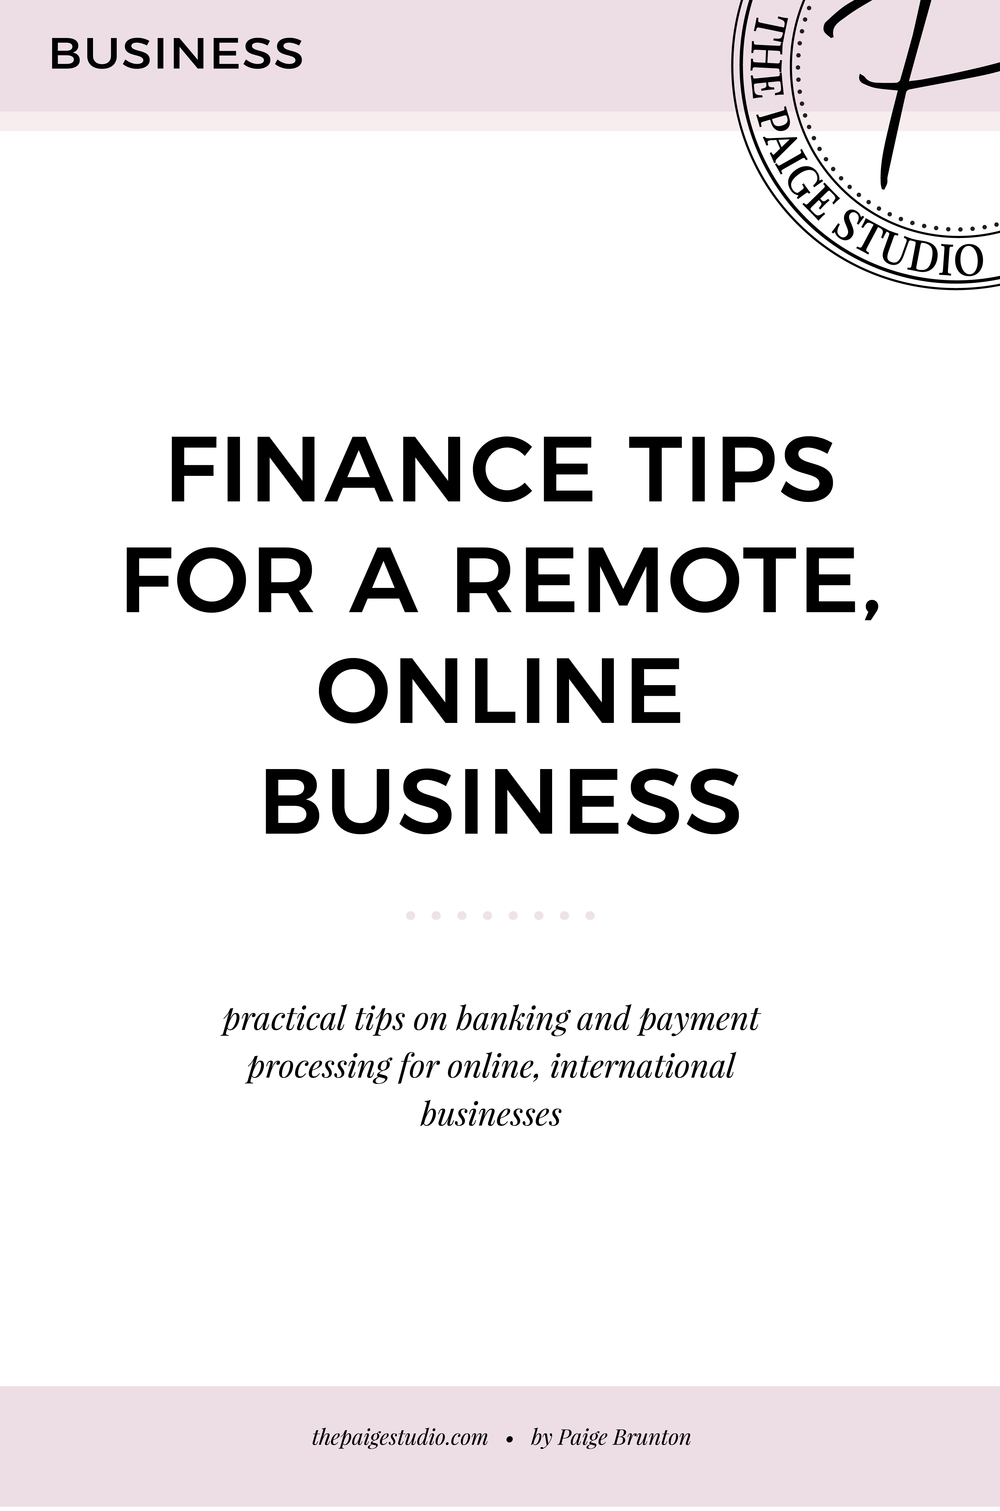 finance, banking and payment processing tips for a remote, online and international business.png